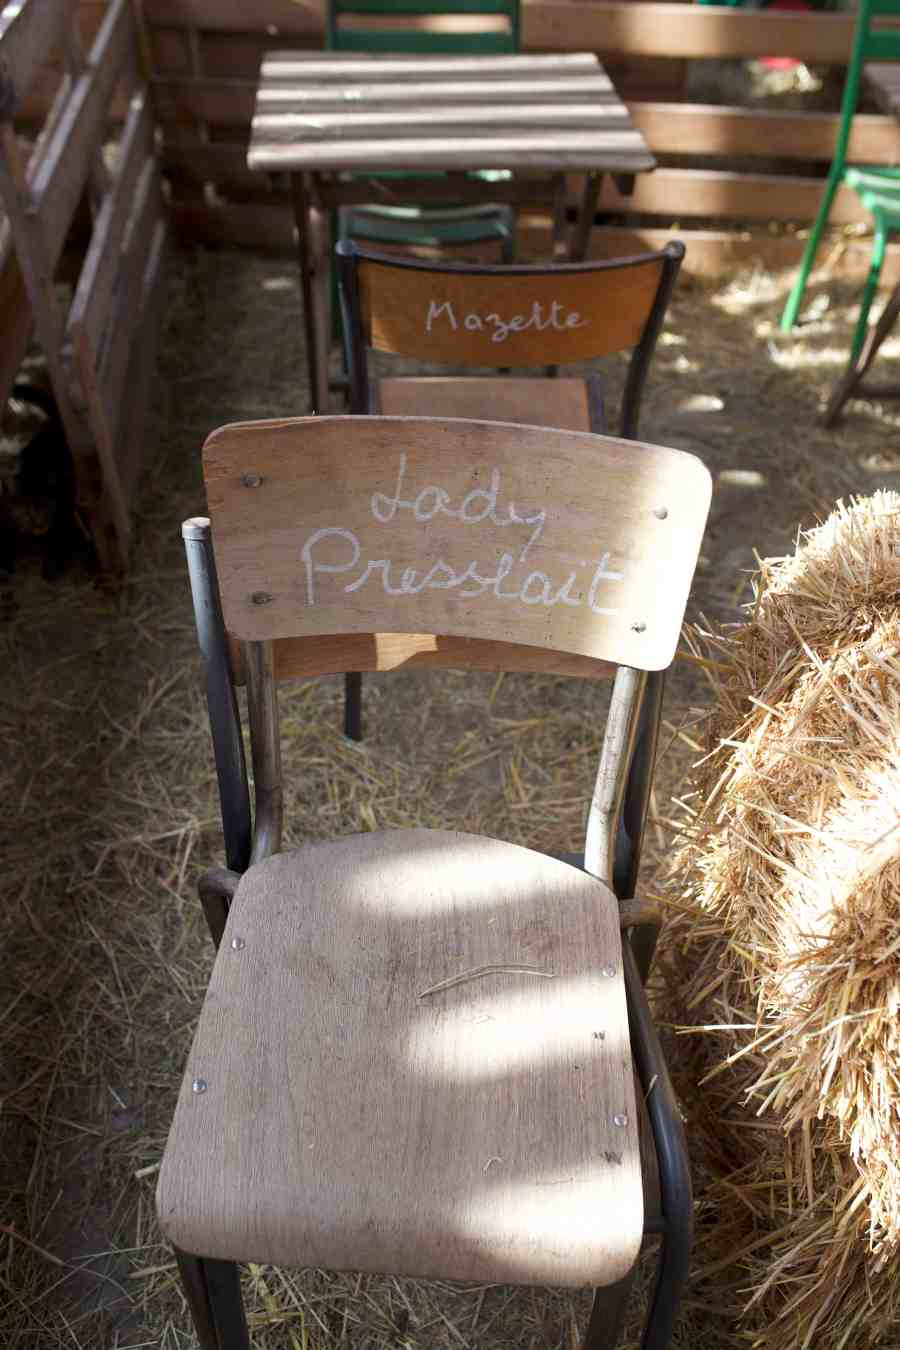 chevrerie-rieulay-hauts de france-valenciennes-terril-bio-chevre-ferme-decoration-chaise